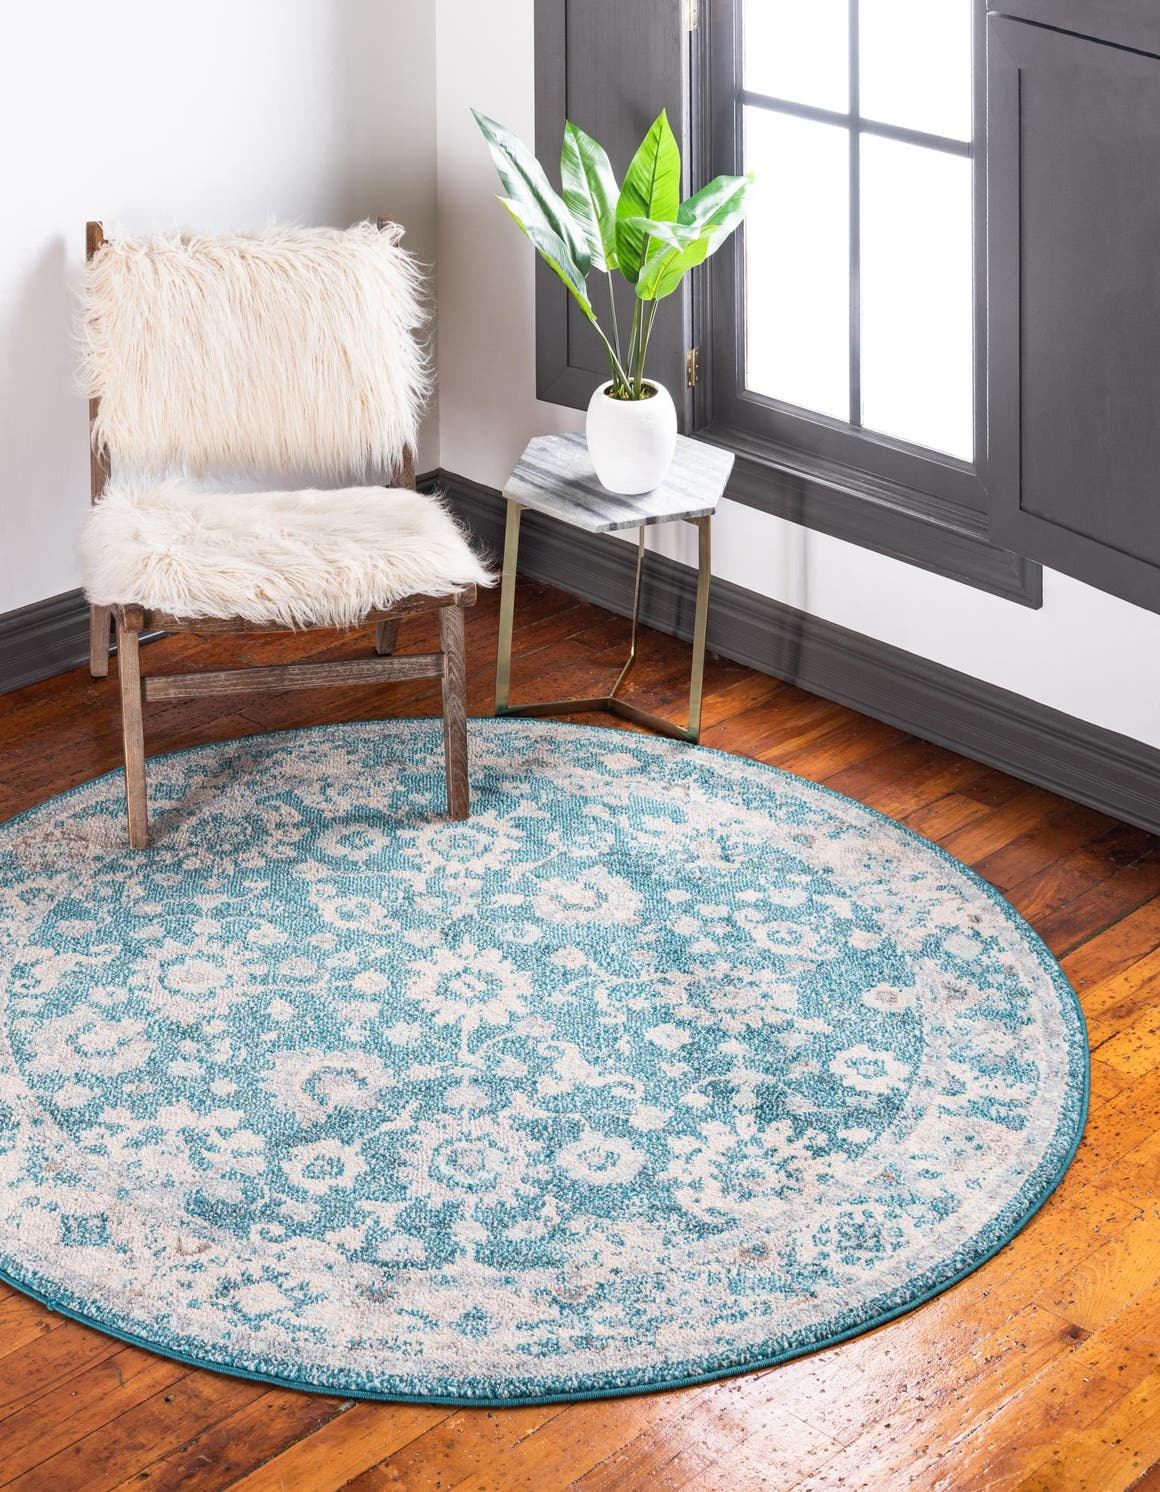 6' x 6' Carrington Round Rug main image